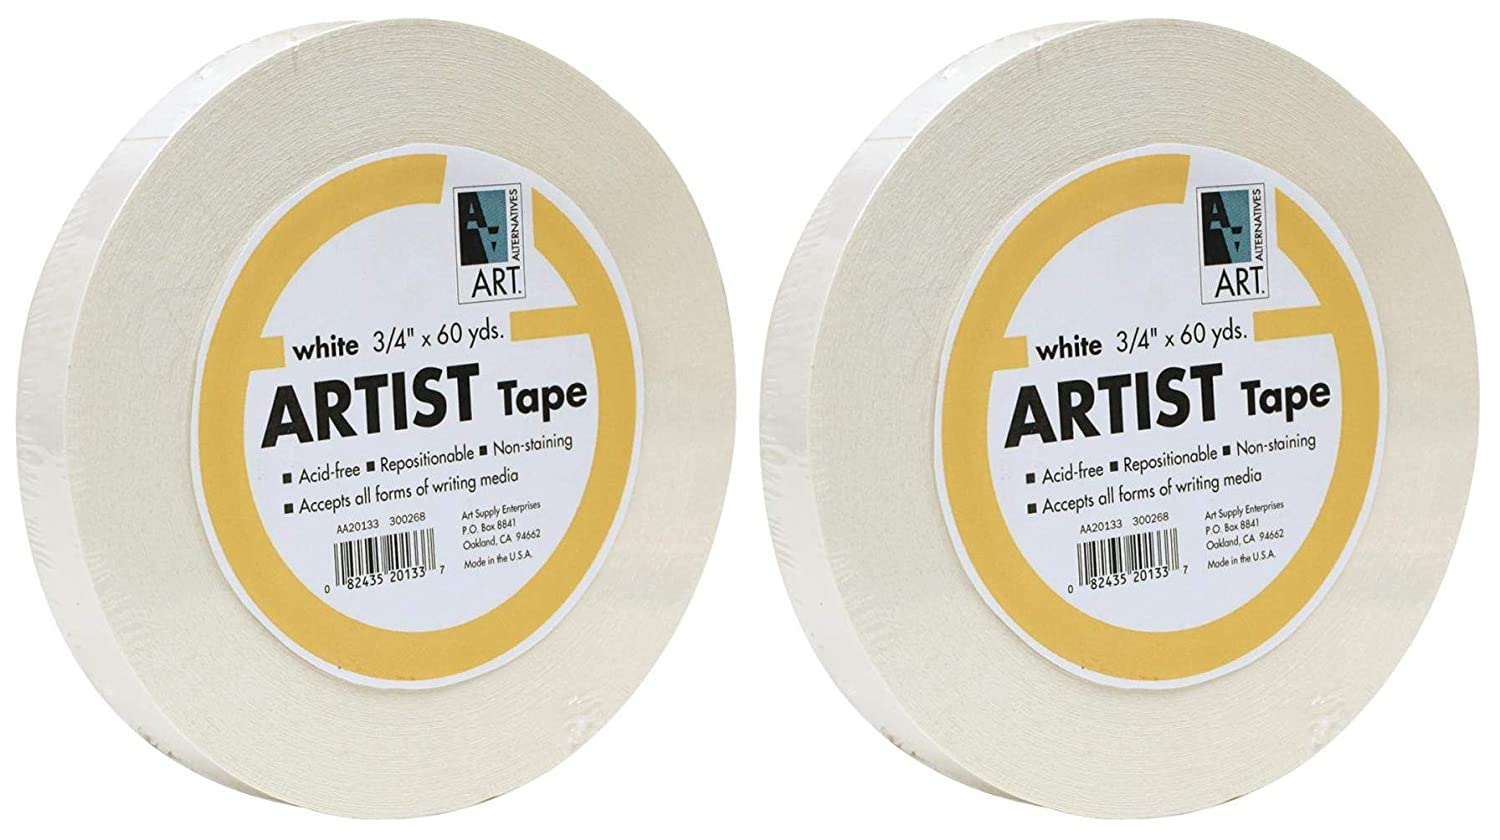 Economy White Artists Tape 3/4In X 60Yds by Art Alternatives MACPHERSON AA20133